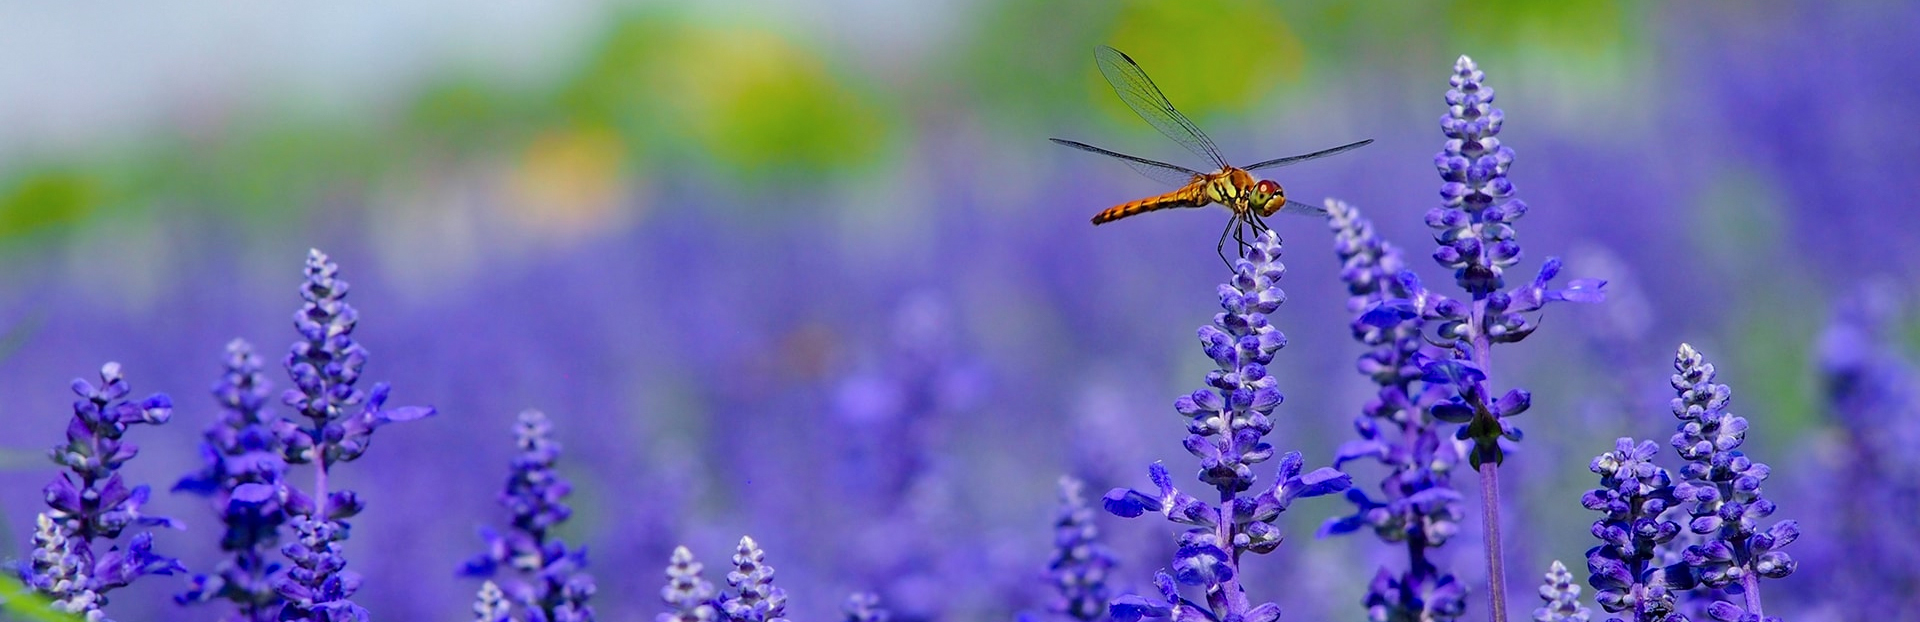 image of a dragonfly and purple flowers